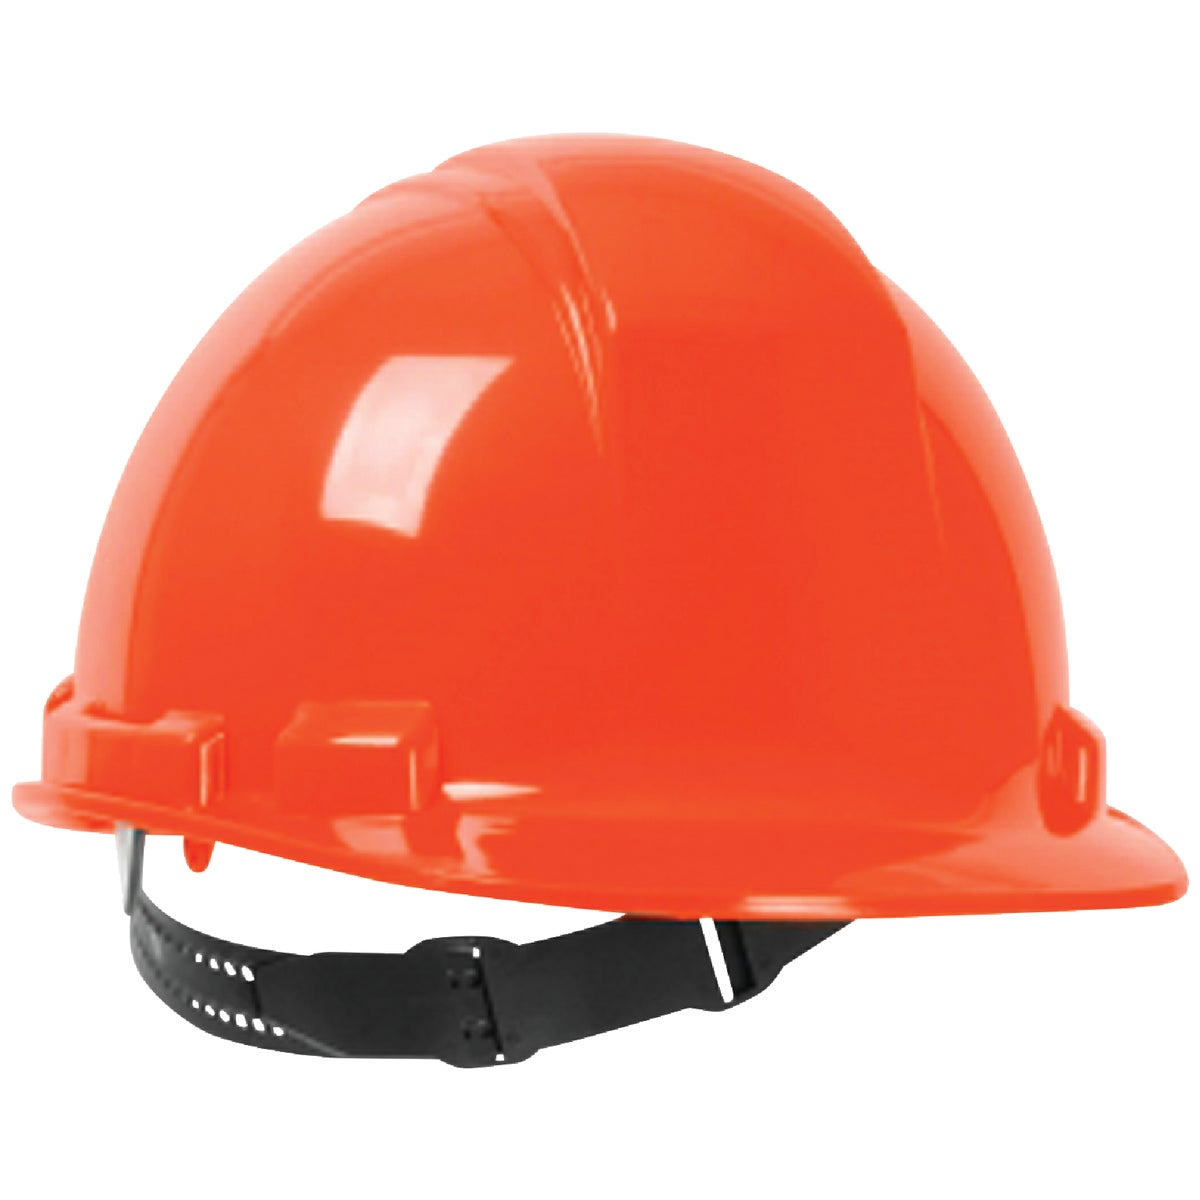 ORANGE HARD HAT - 463945 by Msa Safety